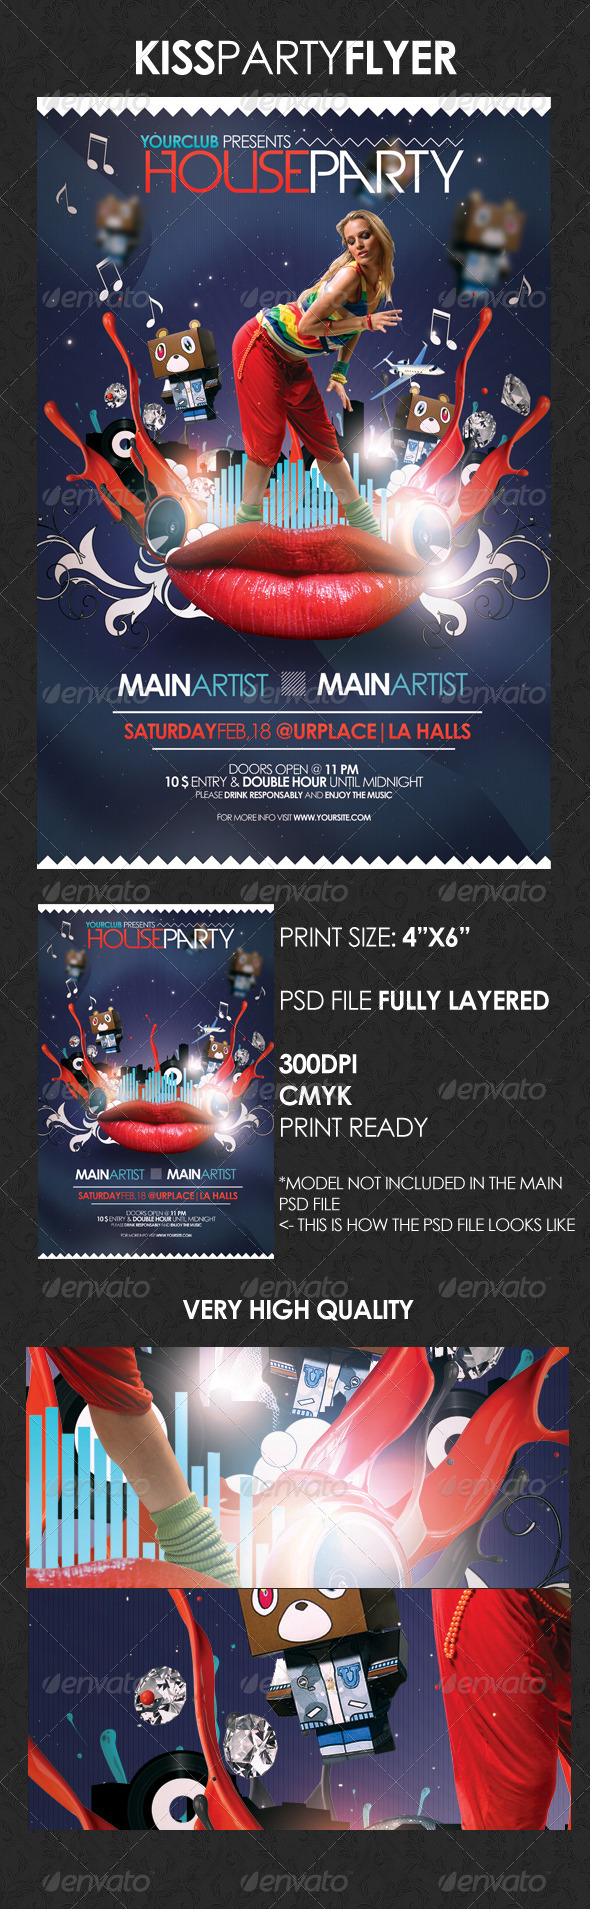 GraphicRiver Kiss Houseparty Flyer 1613993